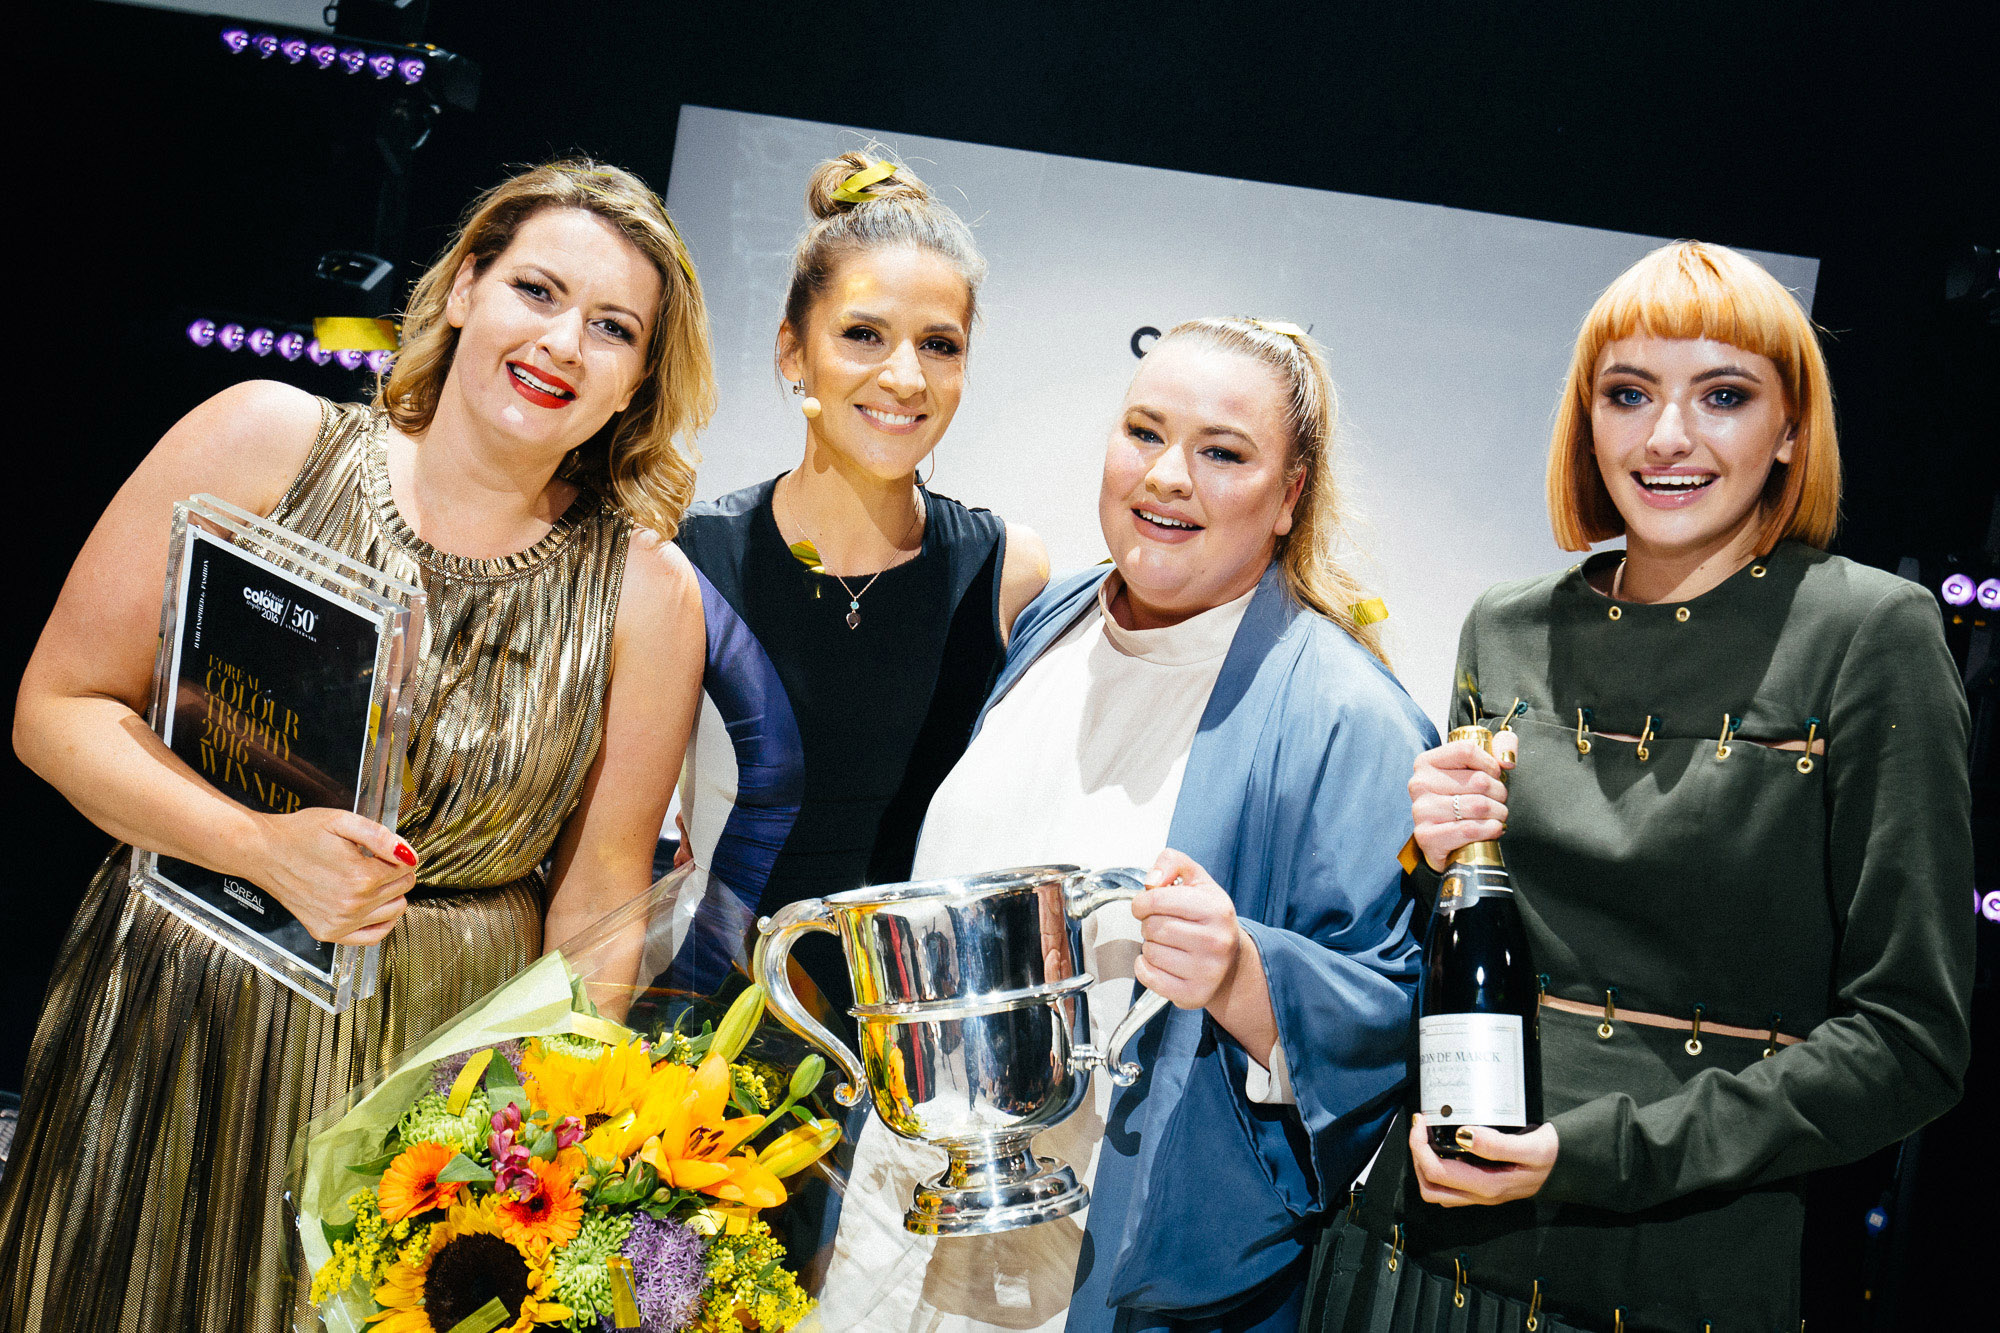 Pictured at the L'Oreal Colour Trophy Awards 2016 which took place in the Convention Centre Dublin recently (June 20th 2016) were the winners of the L'Oreal Colour Trophy 2016 Award Aoife Bradley and Jenny Dawson of Dylan Bradshaw Academy, Dublin with presenter Amanda Byram and model Alessandra Costello